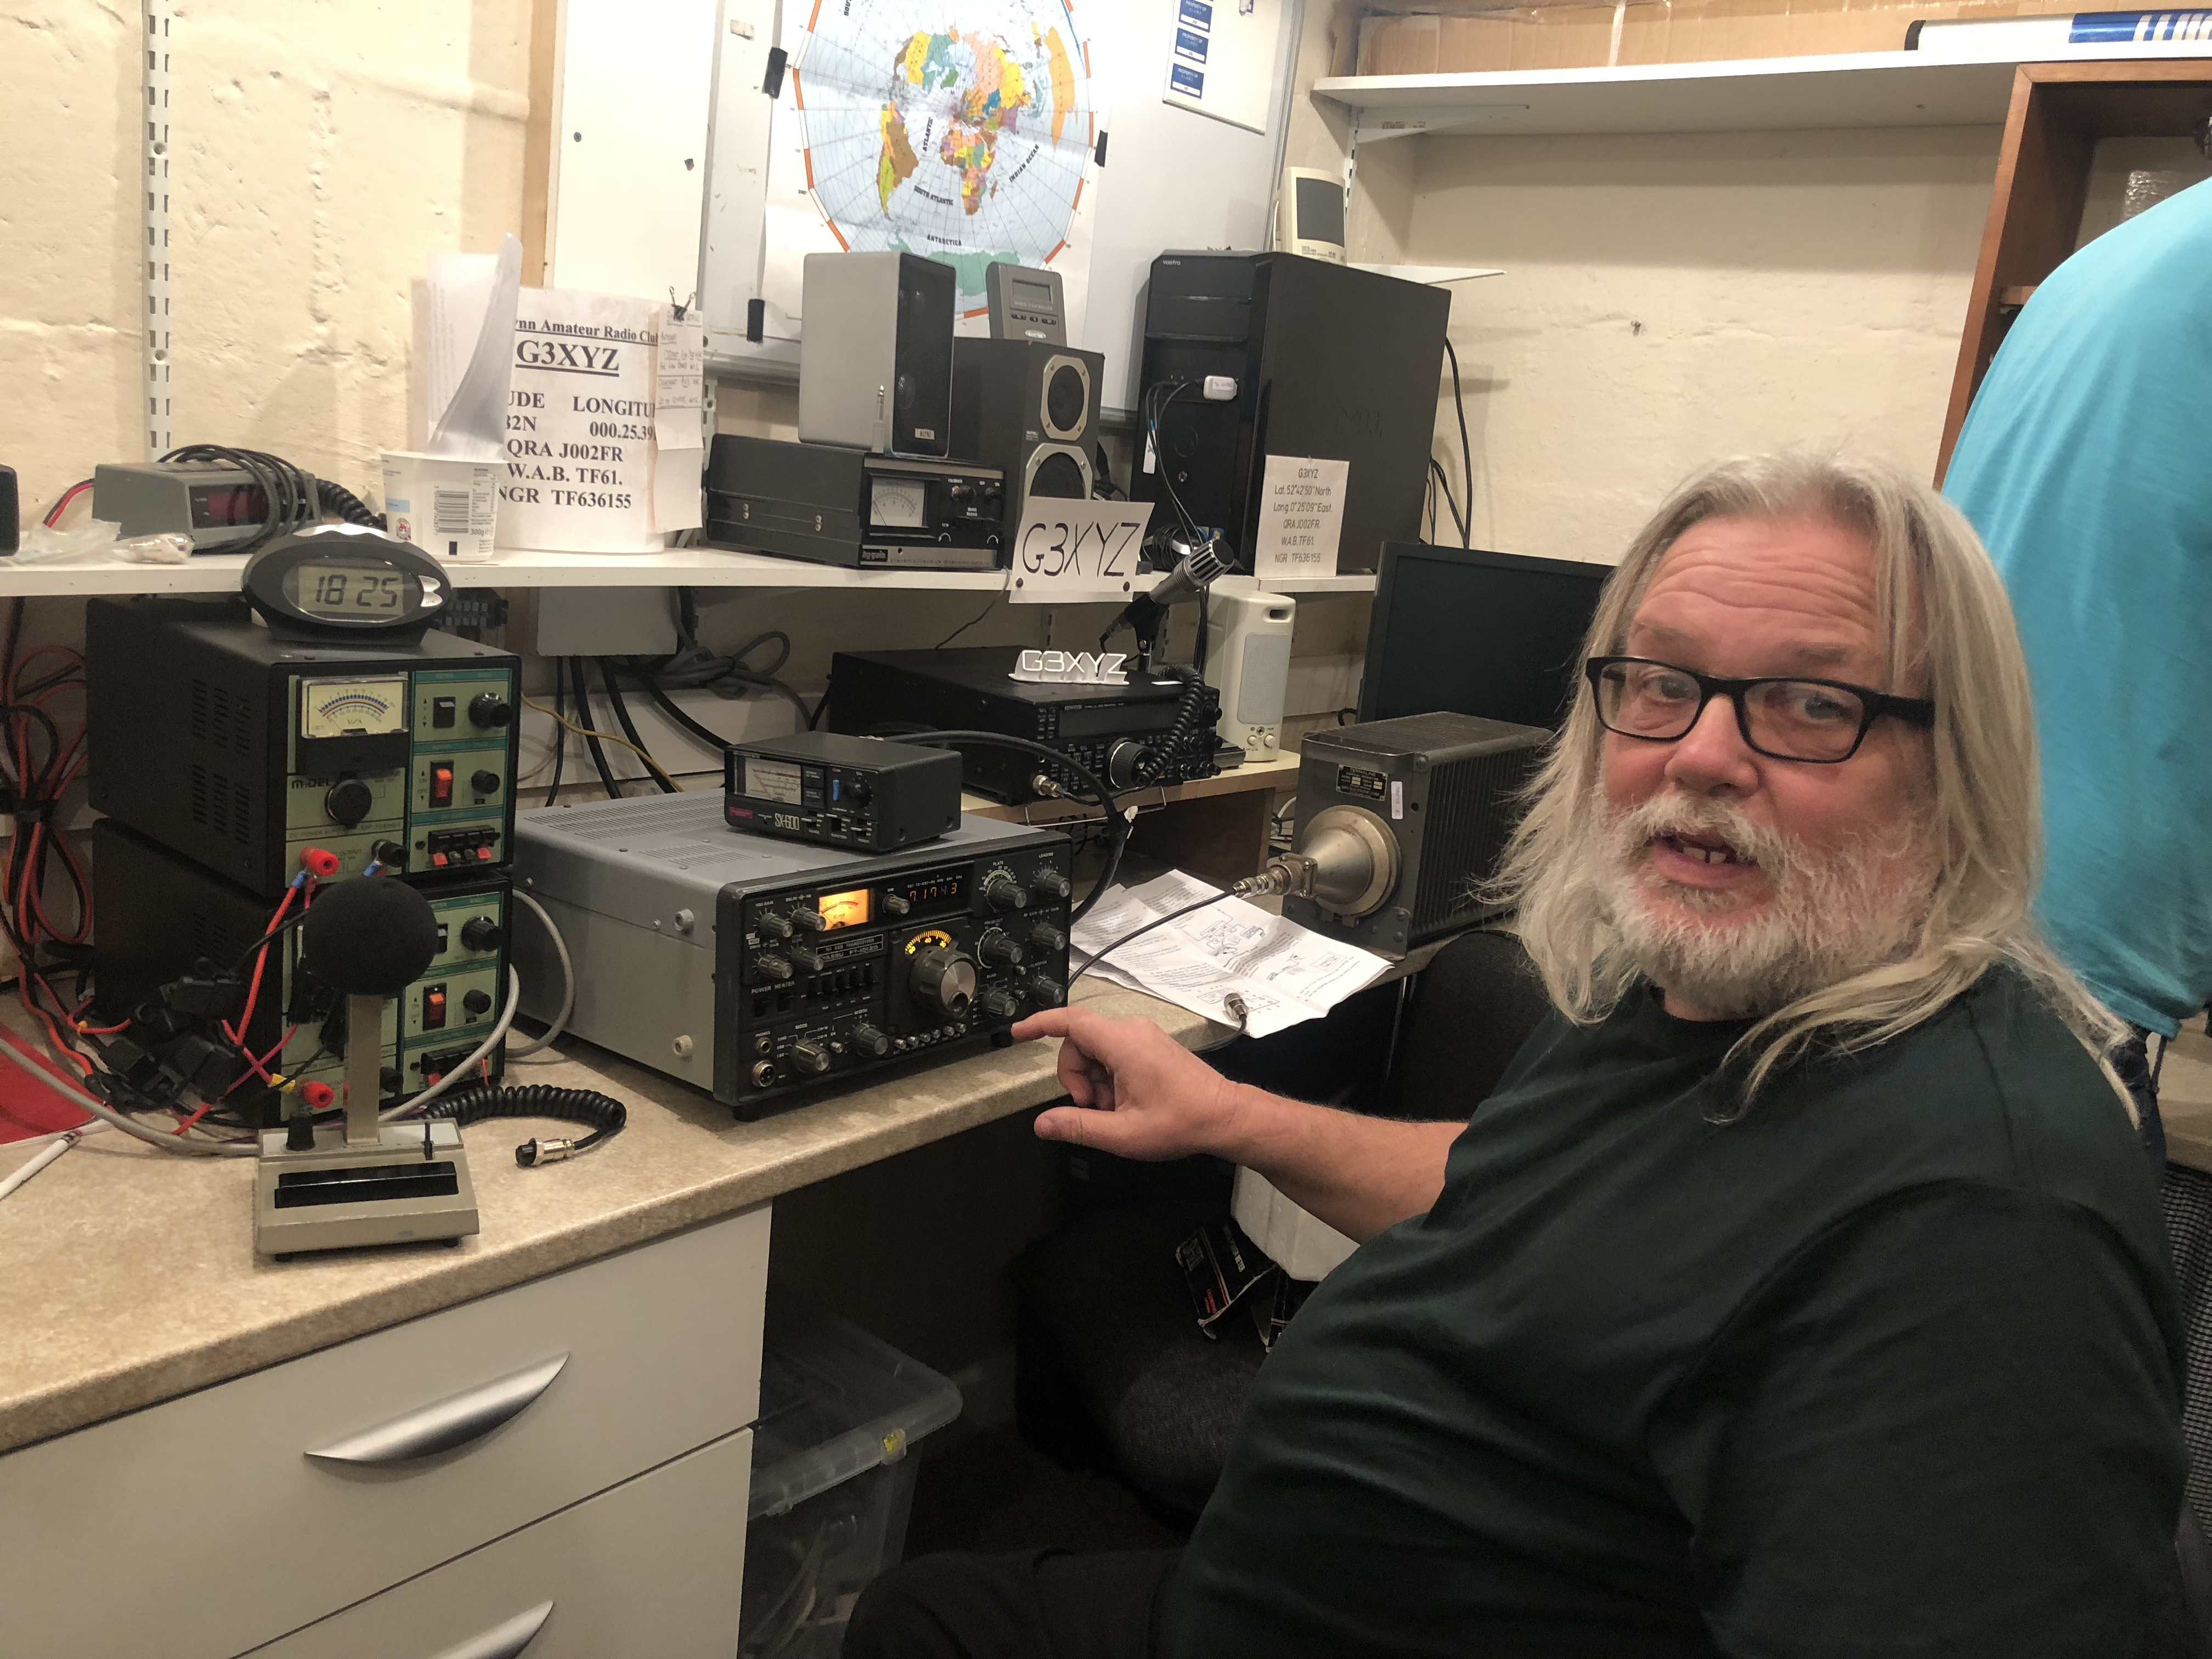 Club Night Diaries October 2018 Kings Lynn Amateur Radio Ham Wiring Diagram The Answer Seemed To Be That Microphone Wasnt Working Properly Swiftly Was Look For A And Go From There